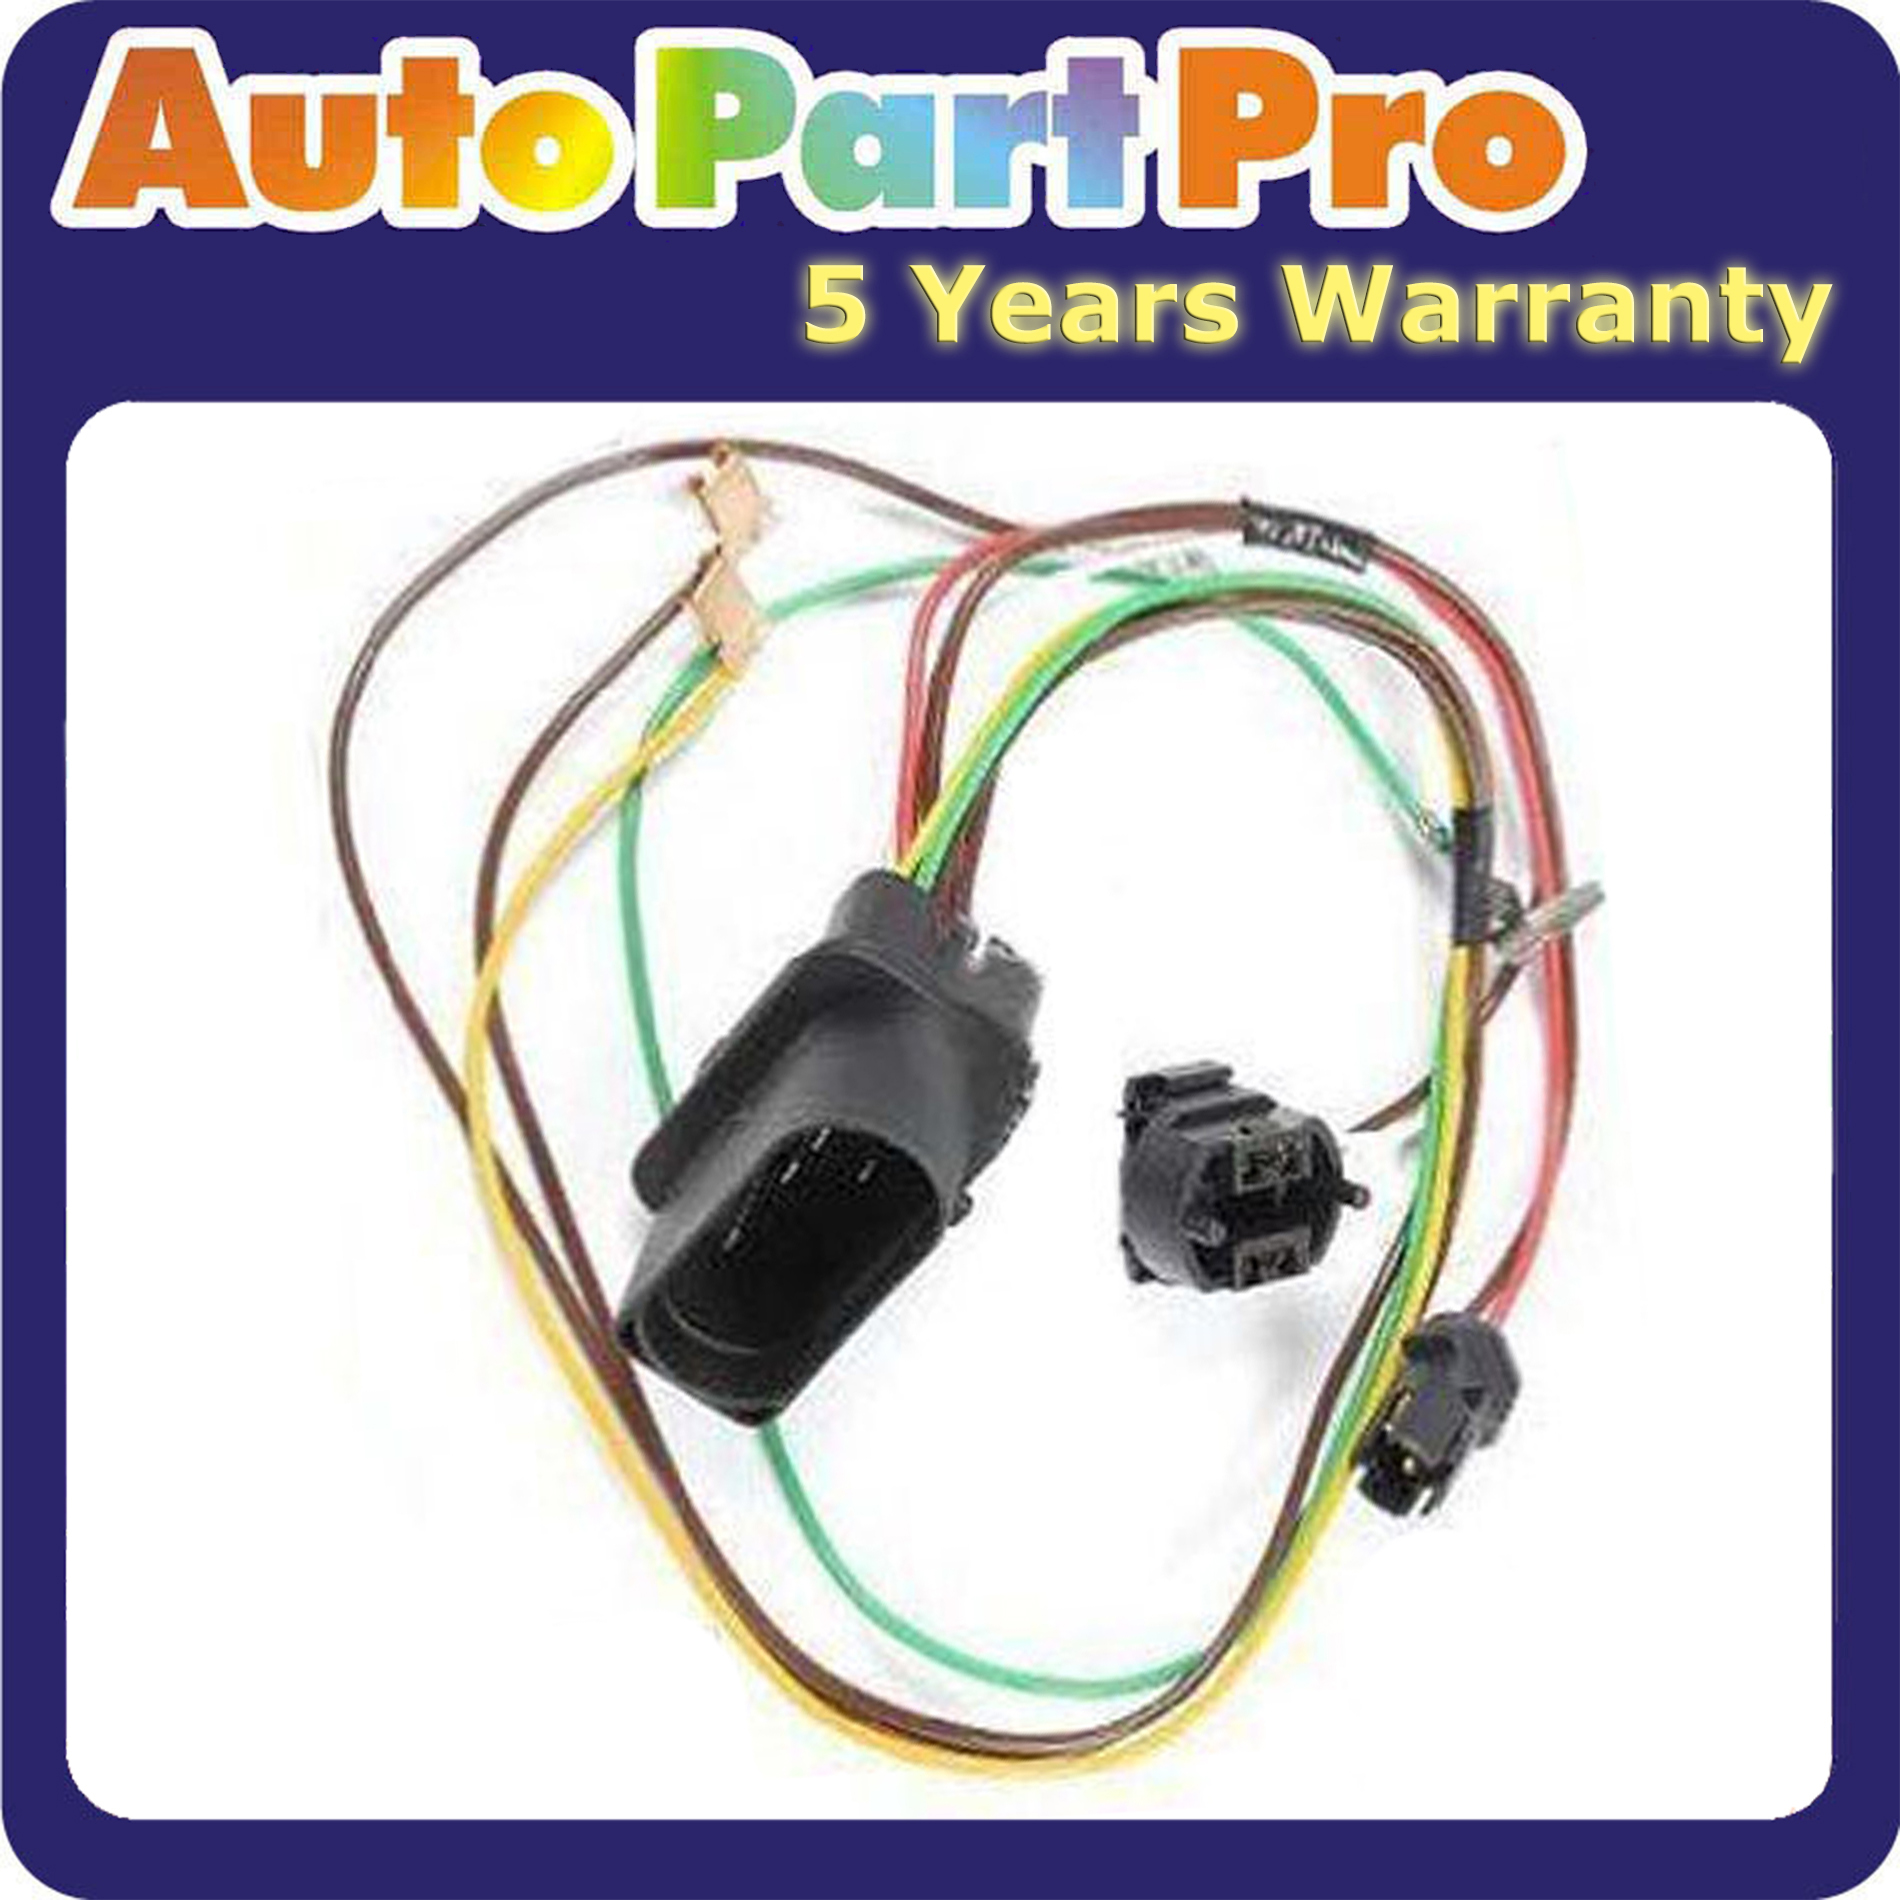 hight resolution of for vw passat 3b0971671 brand new headlight wire harness connector chevy 3 prong headlight plug sockets w 12 leads wiring harness ebay